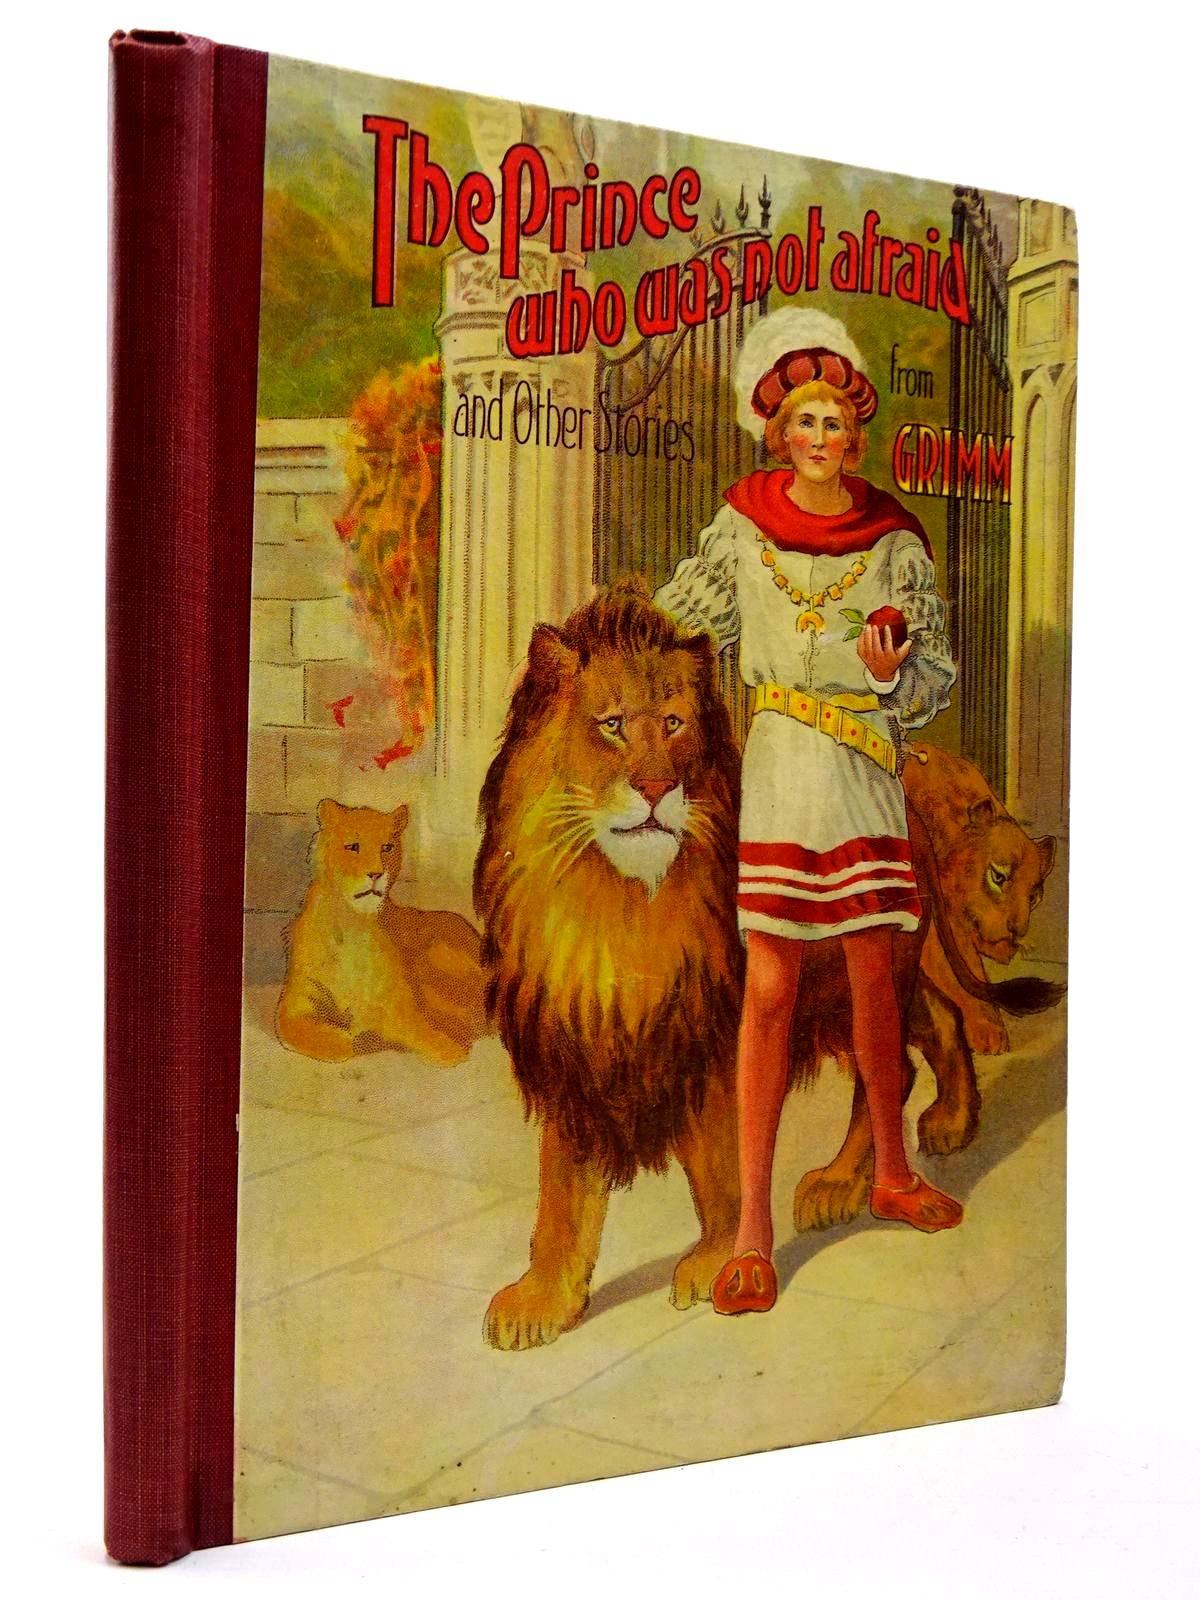 Photo of THE PRINCE WHO WAS NOT AFRAID AND OTHER STORIES- Stock Number: 2130252